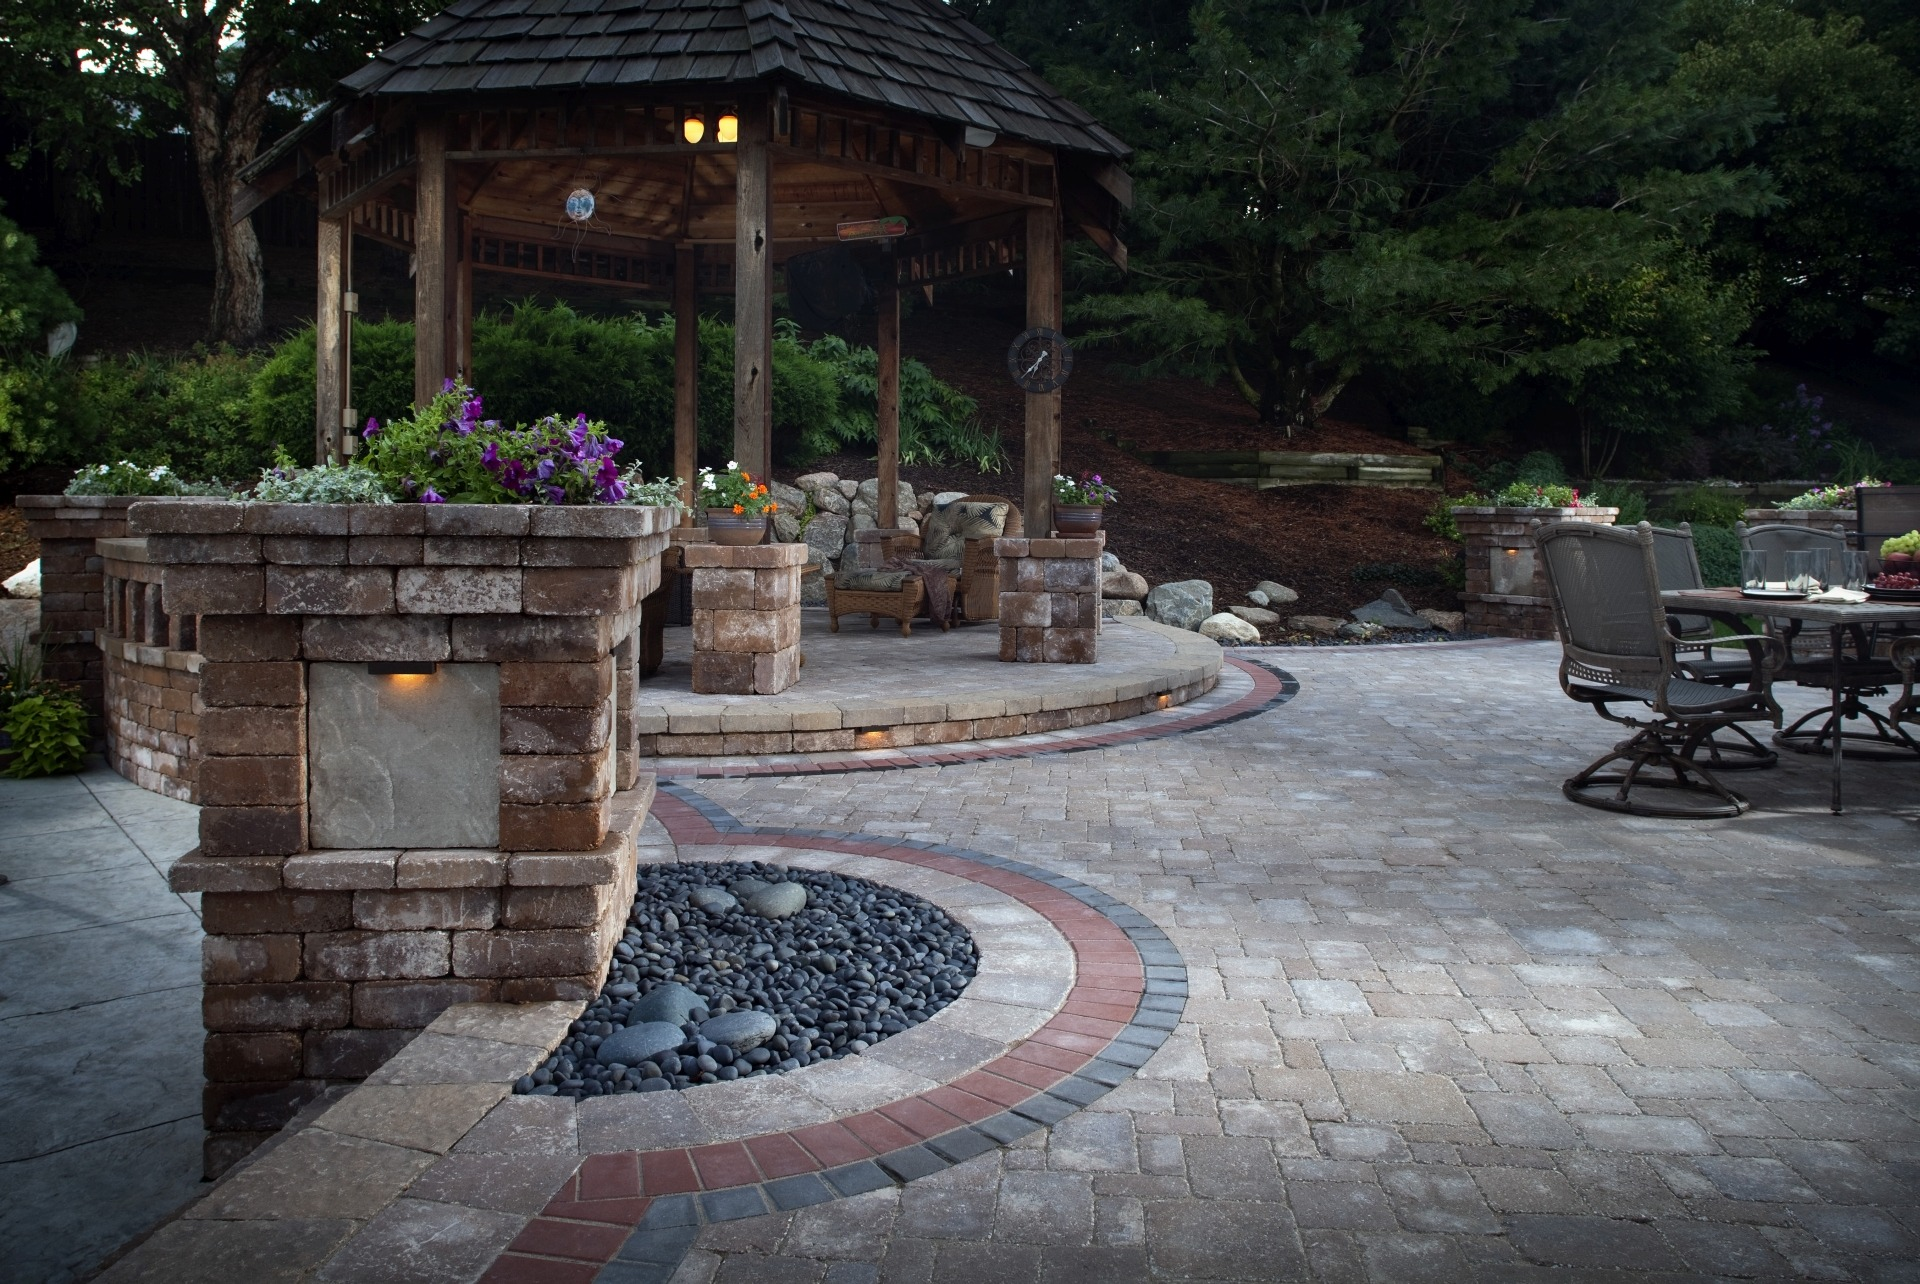 Paving Stone Patio With Seating Areas